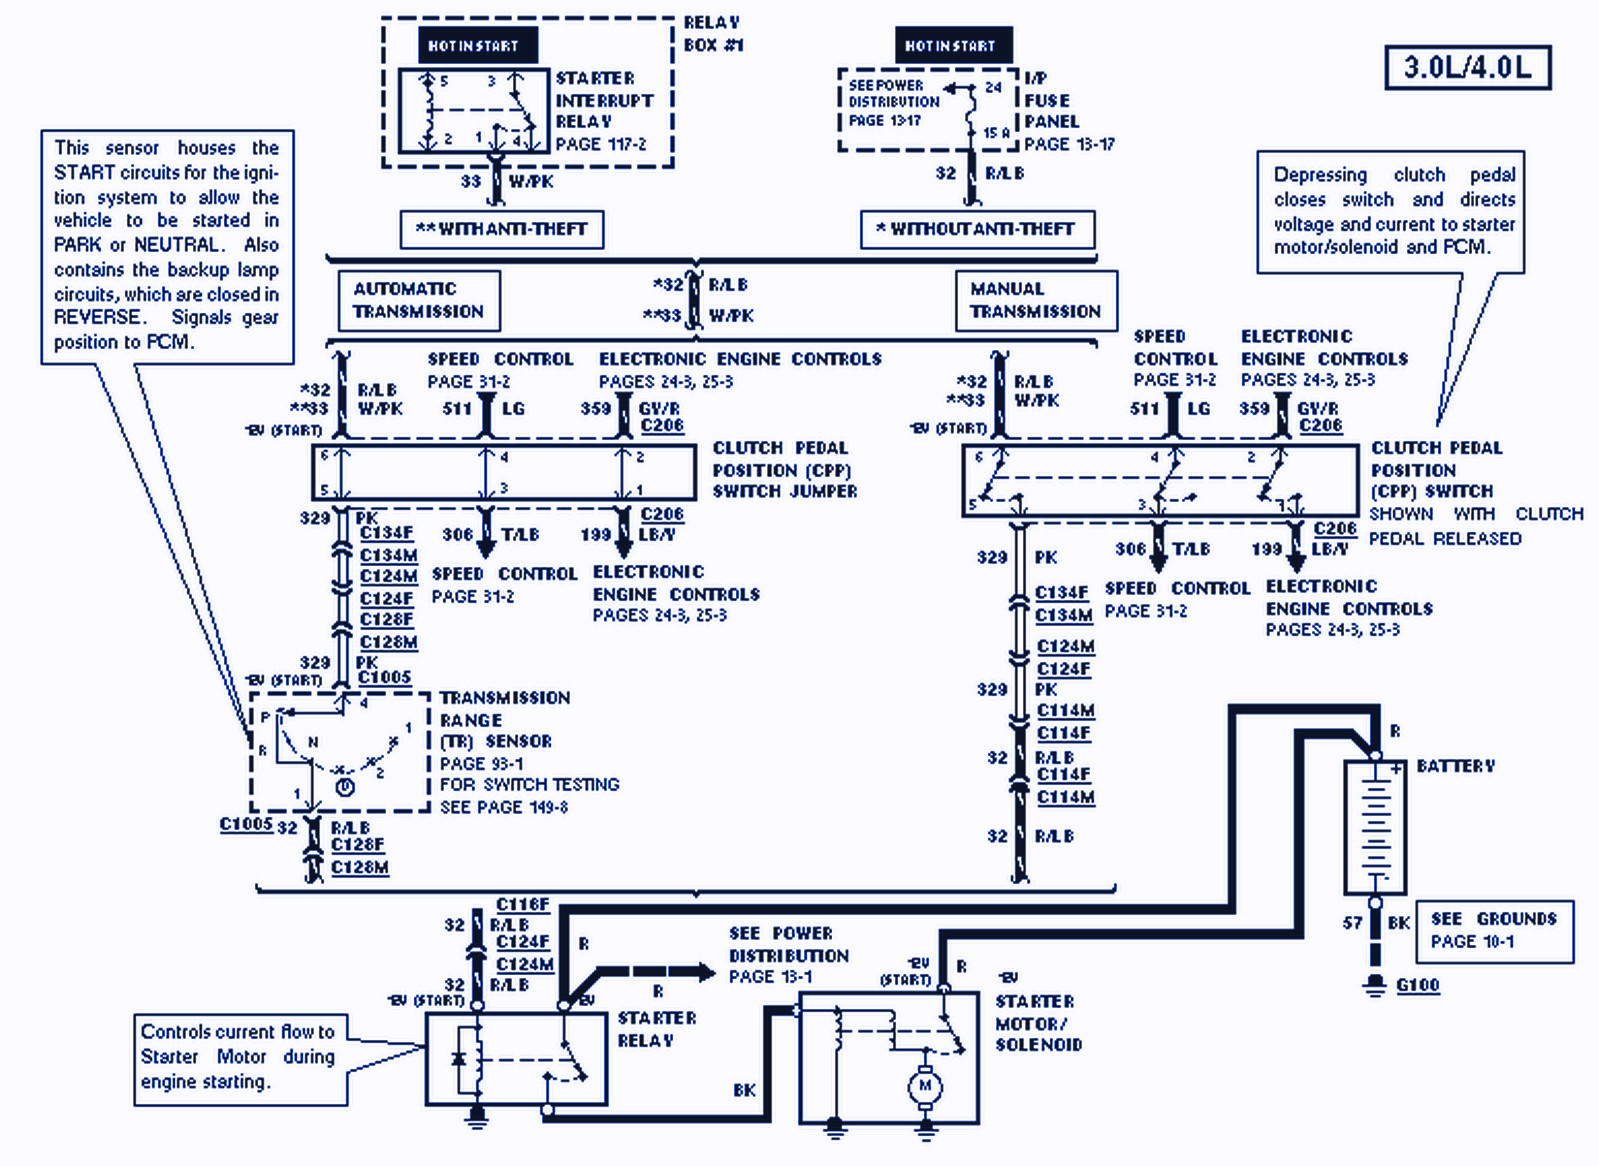 1995 ford ranger wiring diagram. 2002 Expedition Ac ...